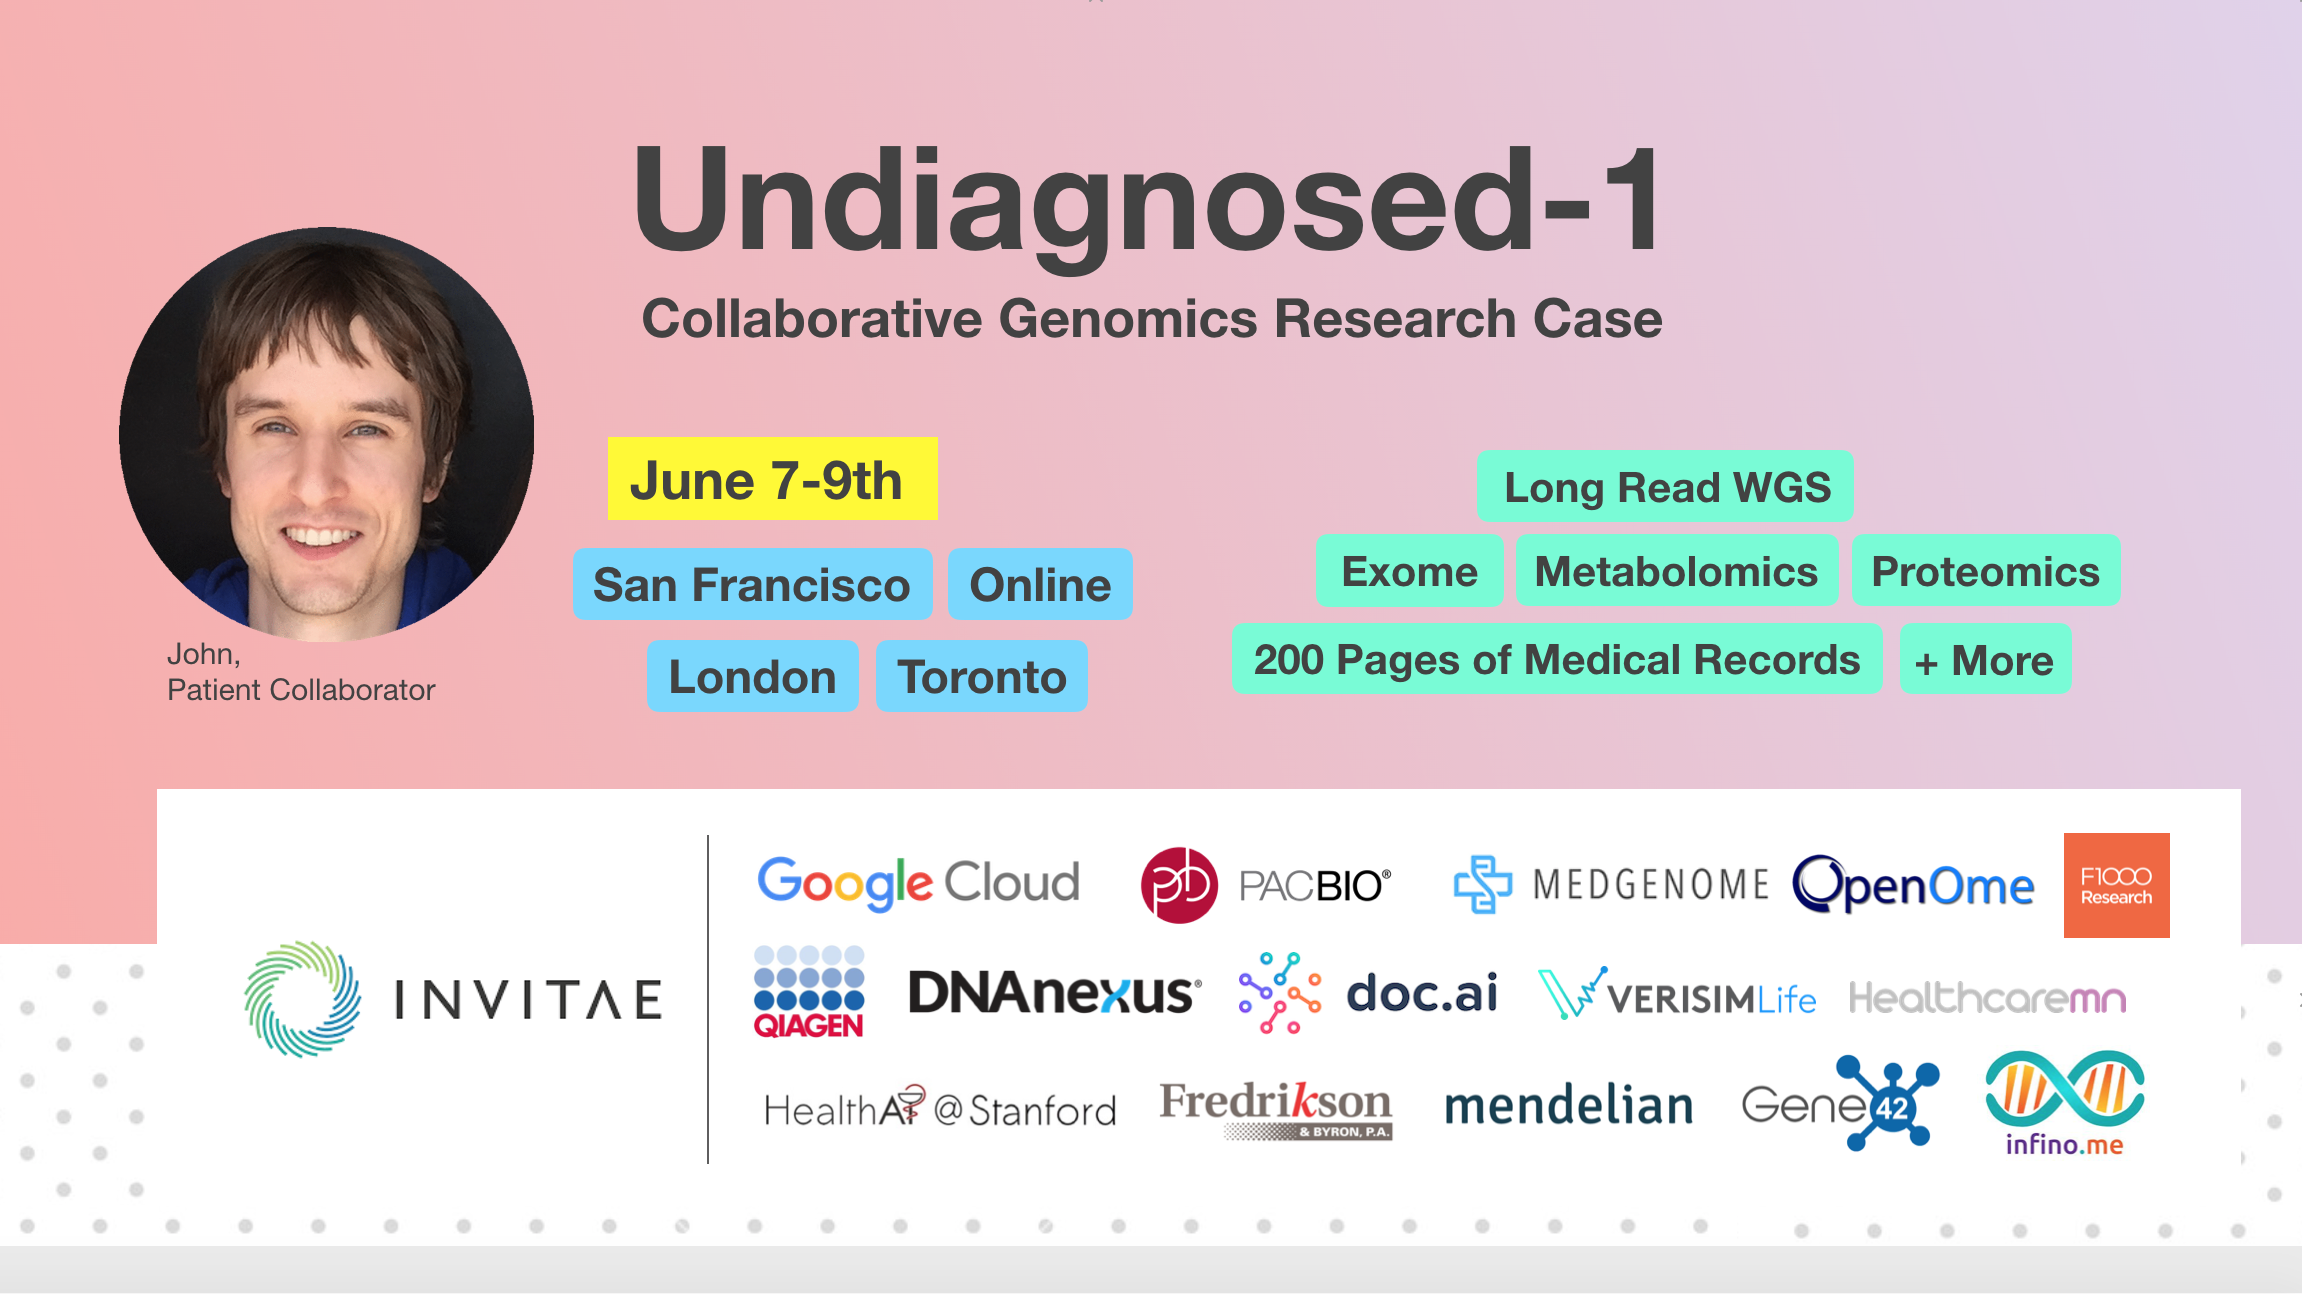 Undiagnosed-1 Poster.